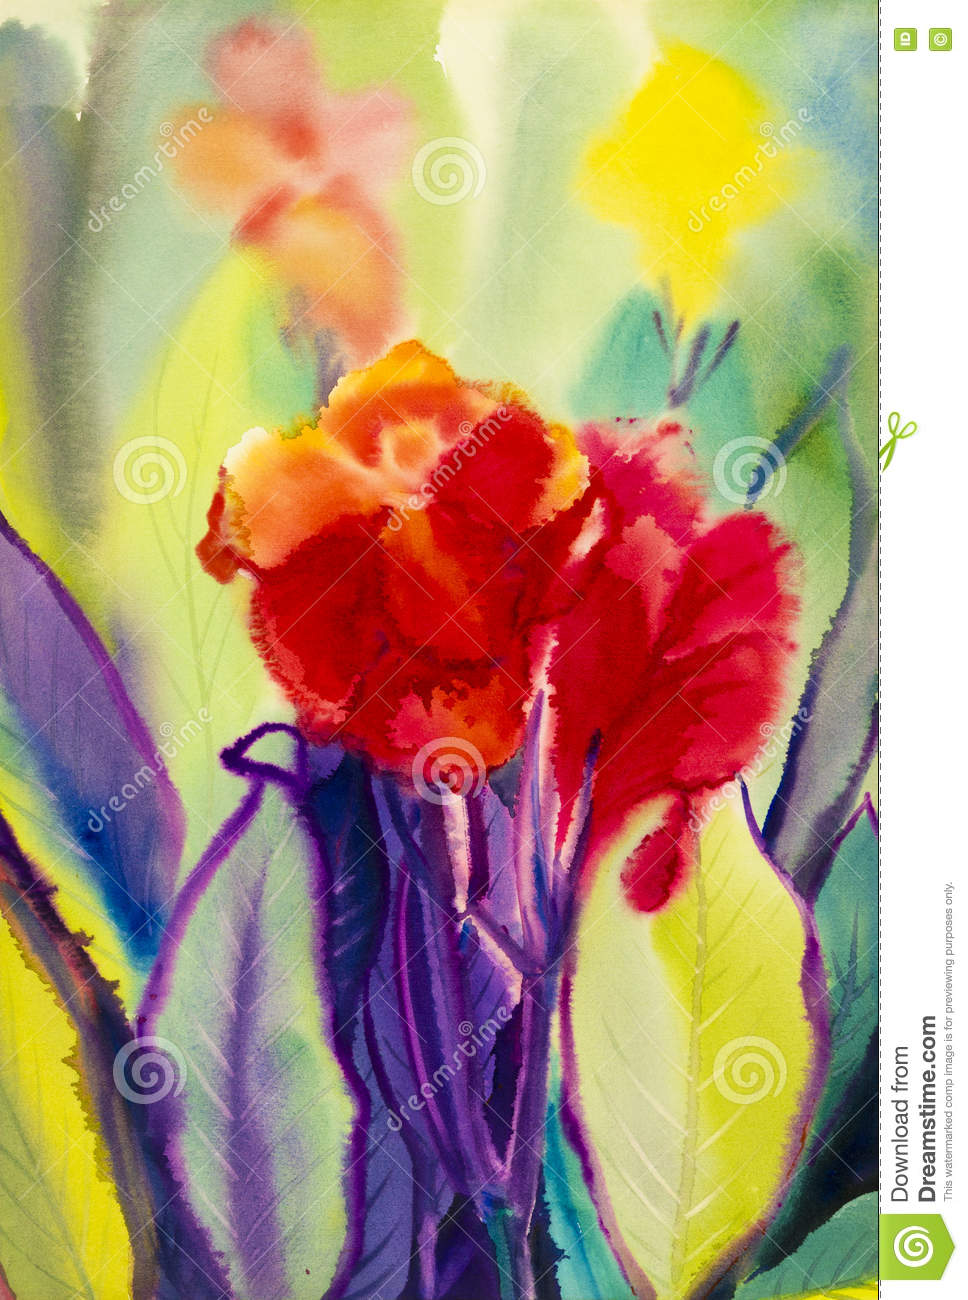 Watercolor Landscape Original Painting Colorful Of Canna Lily Flower